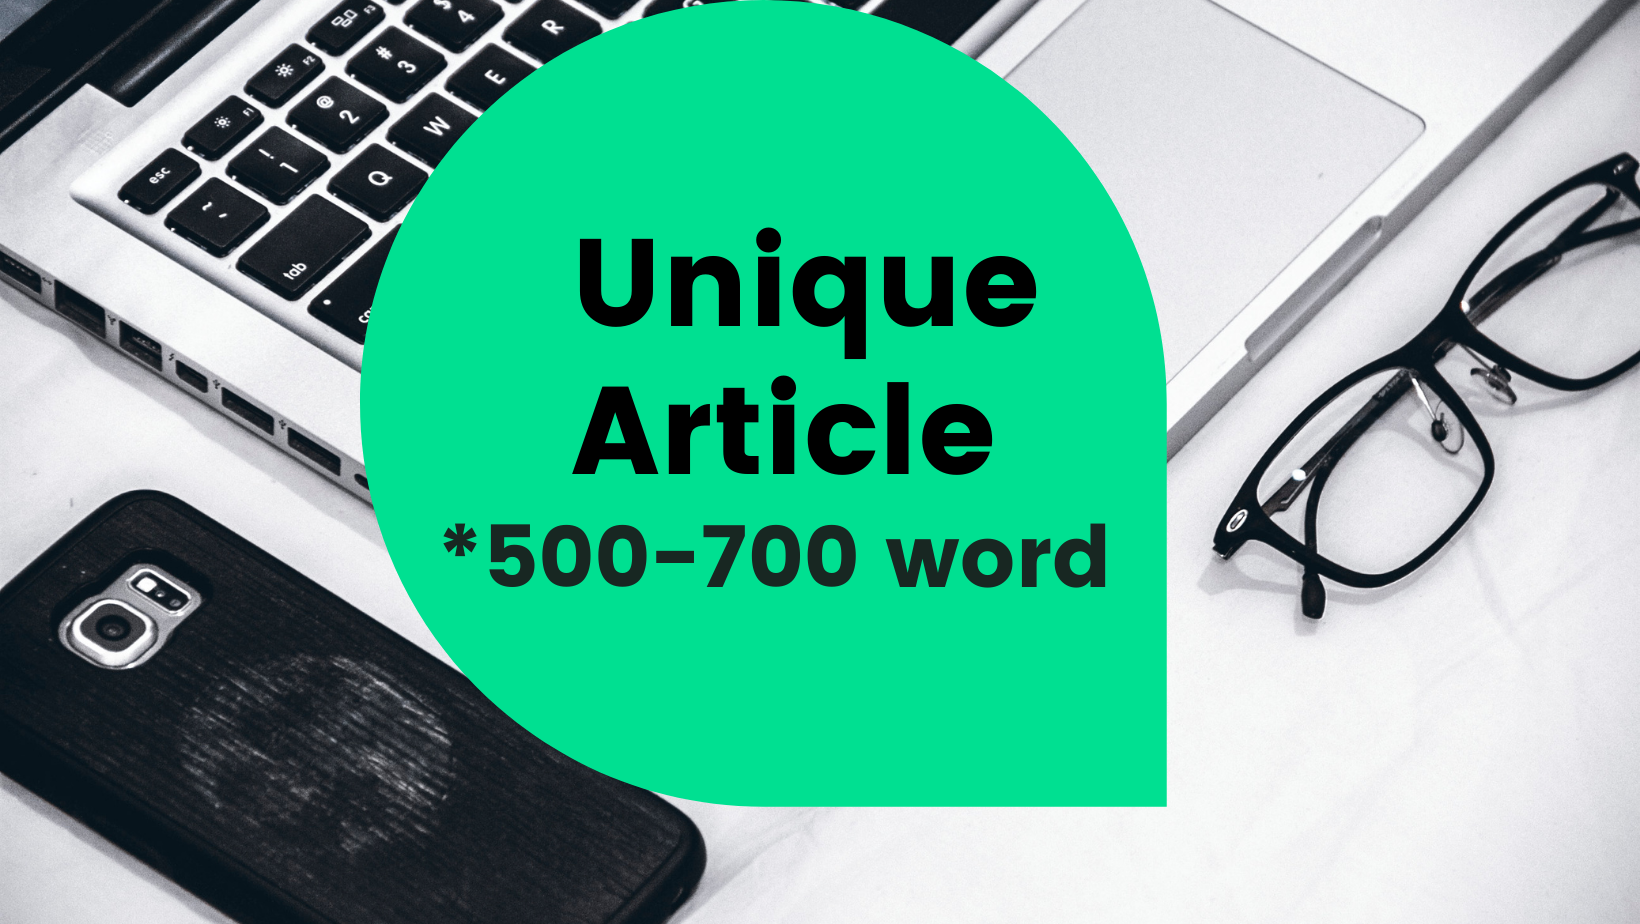 You will get 10 Unique Article 500-700 Word - Any Topic